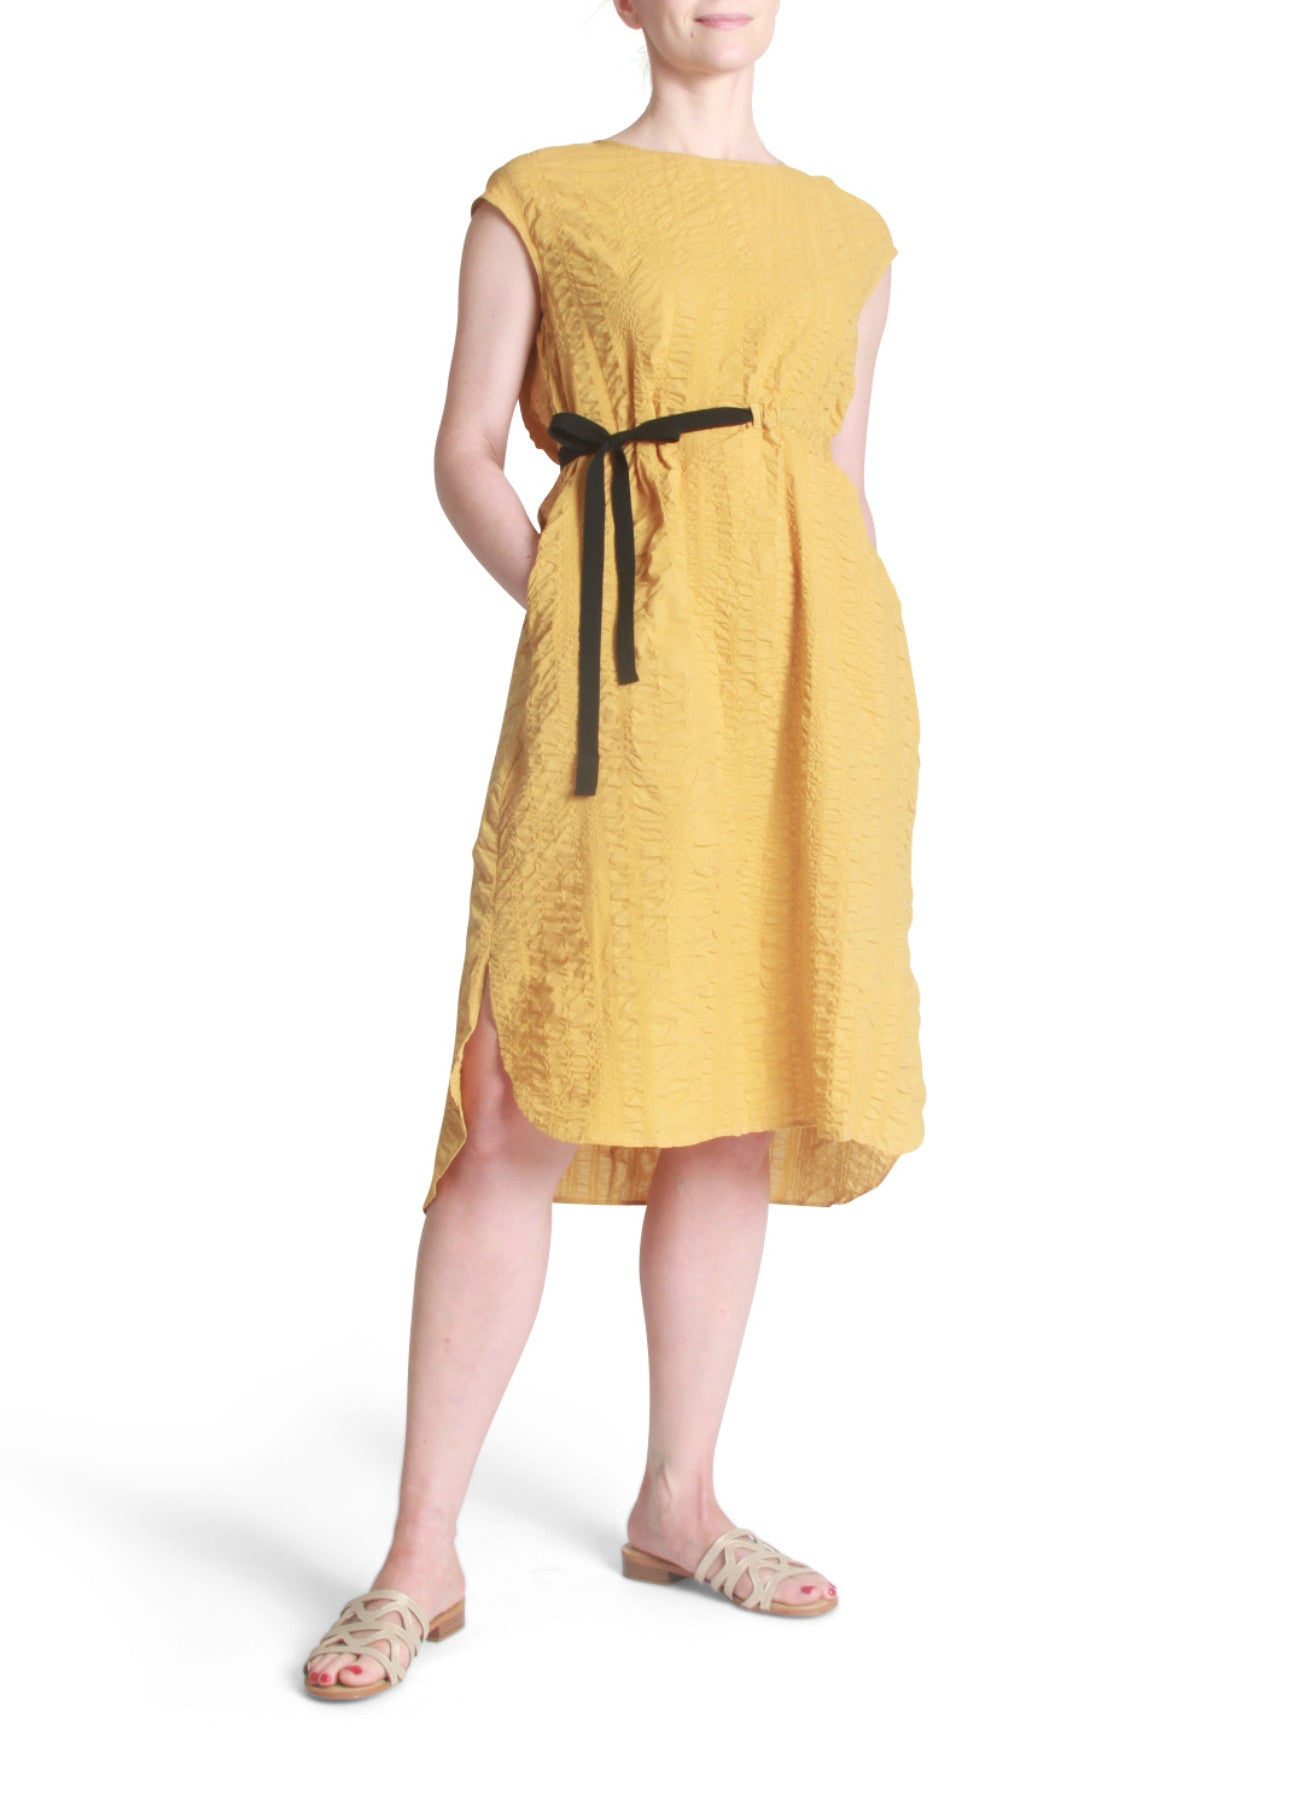 Crepe drawstring dress